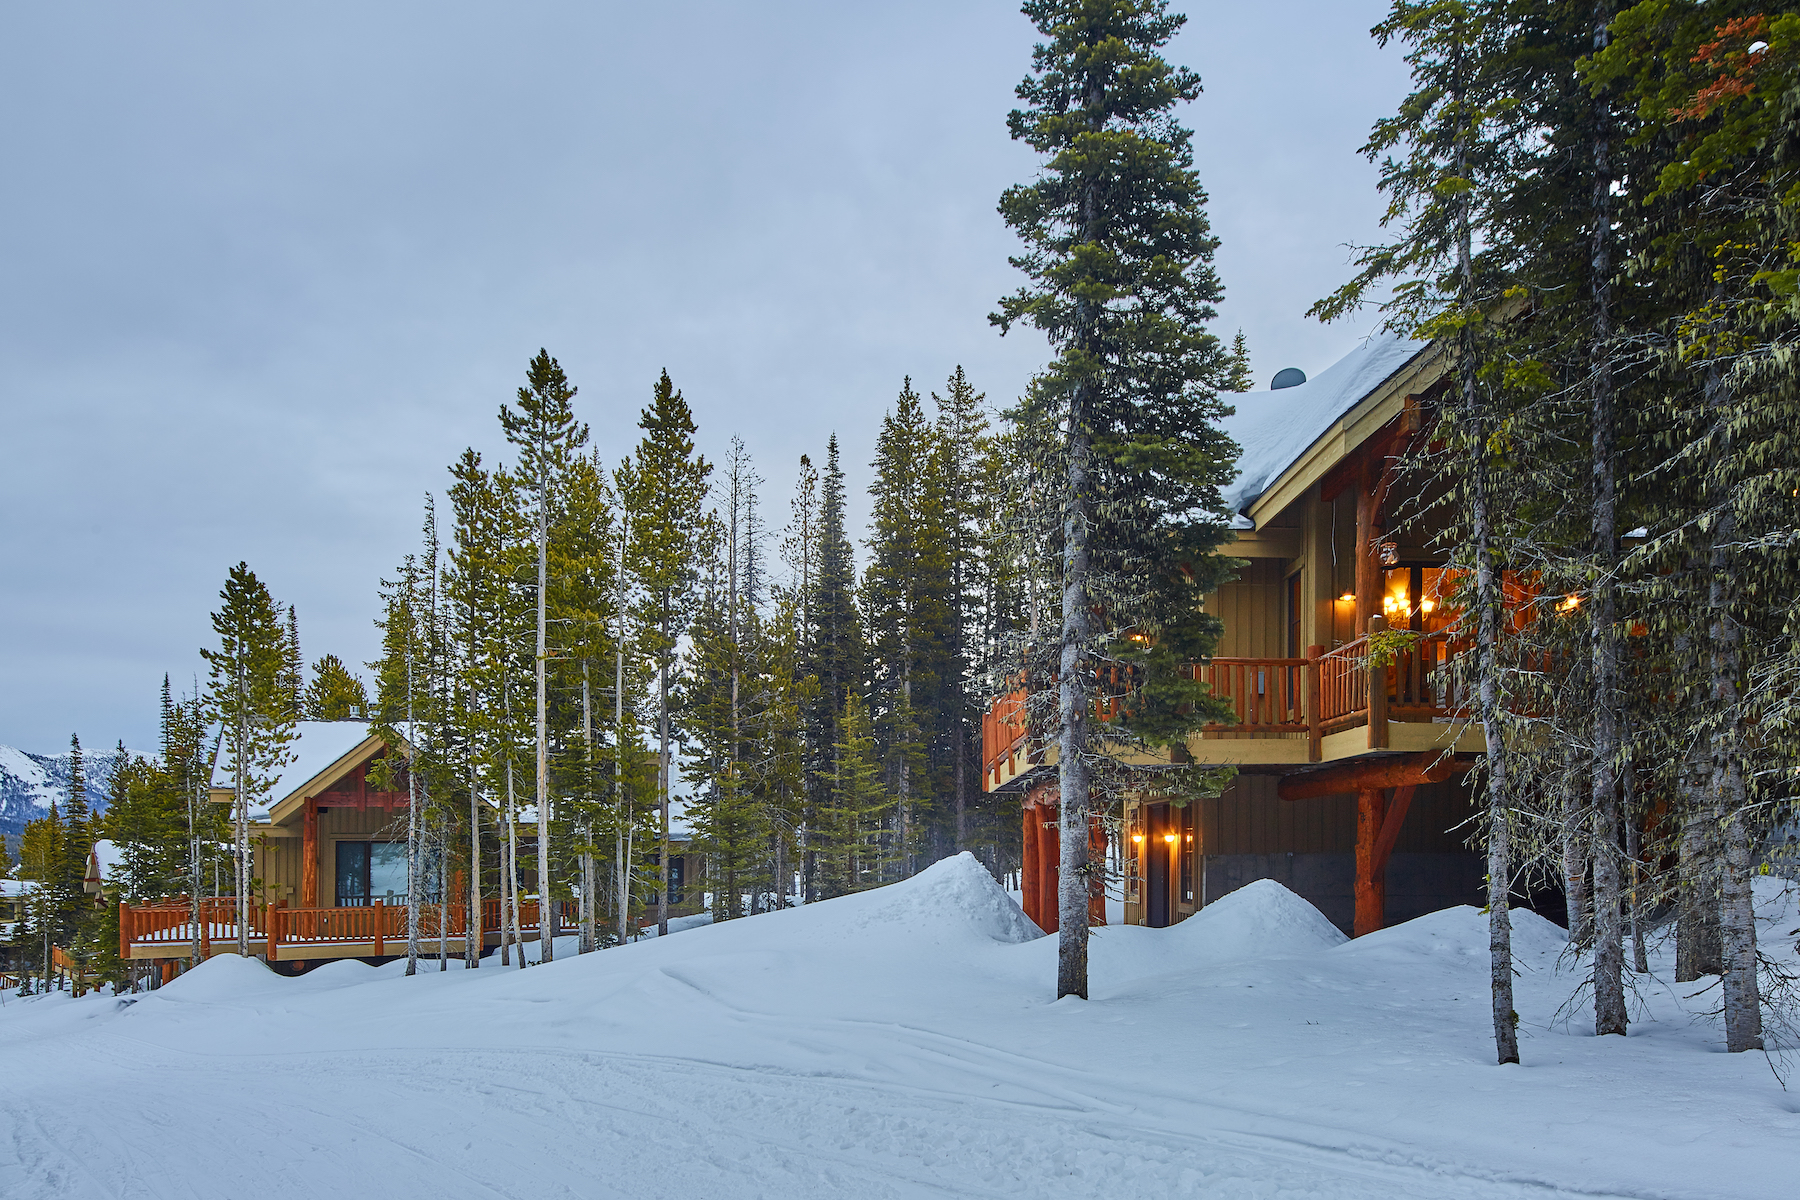 Casa Unifamiliar por un Venta en Ski-in, Ski-out Mountain Home 42 Cowboy Heaven Road Big Sky, Montana, 59716 Estados Unidos